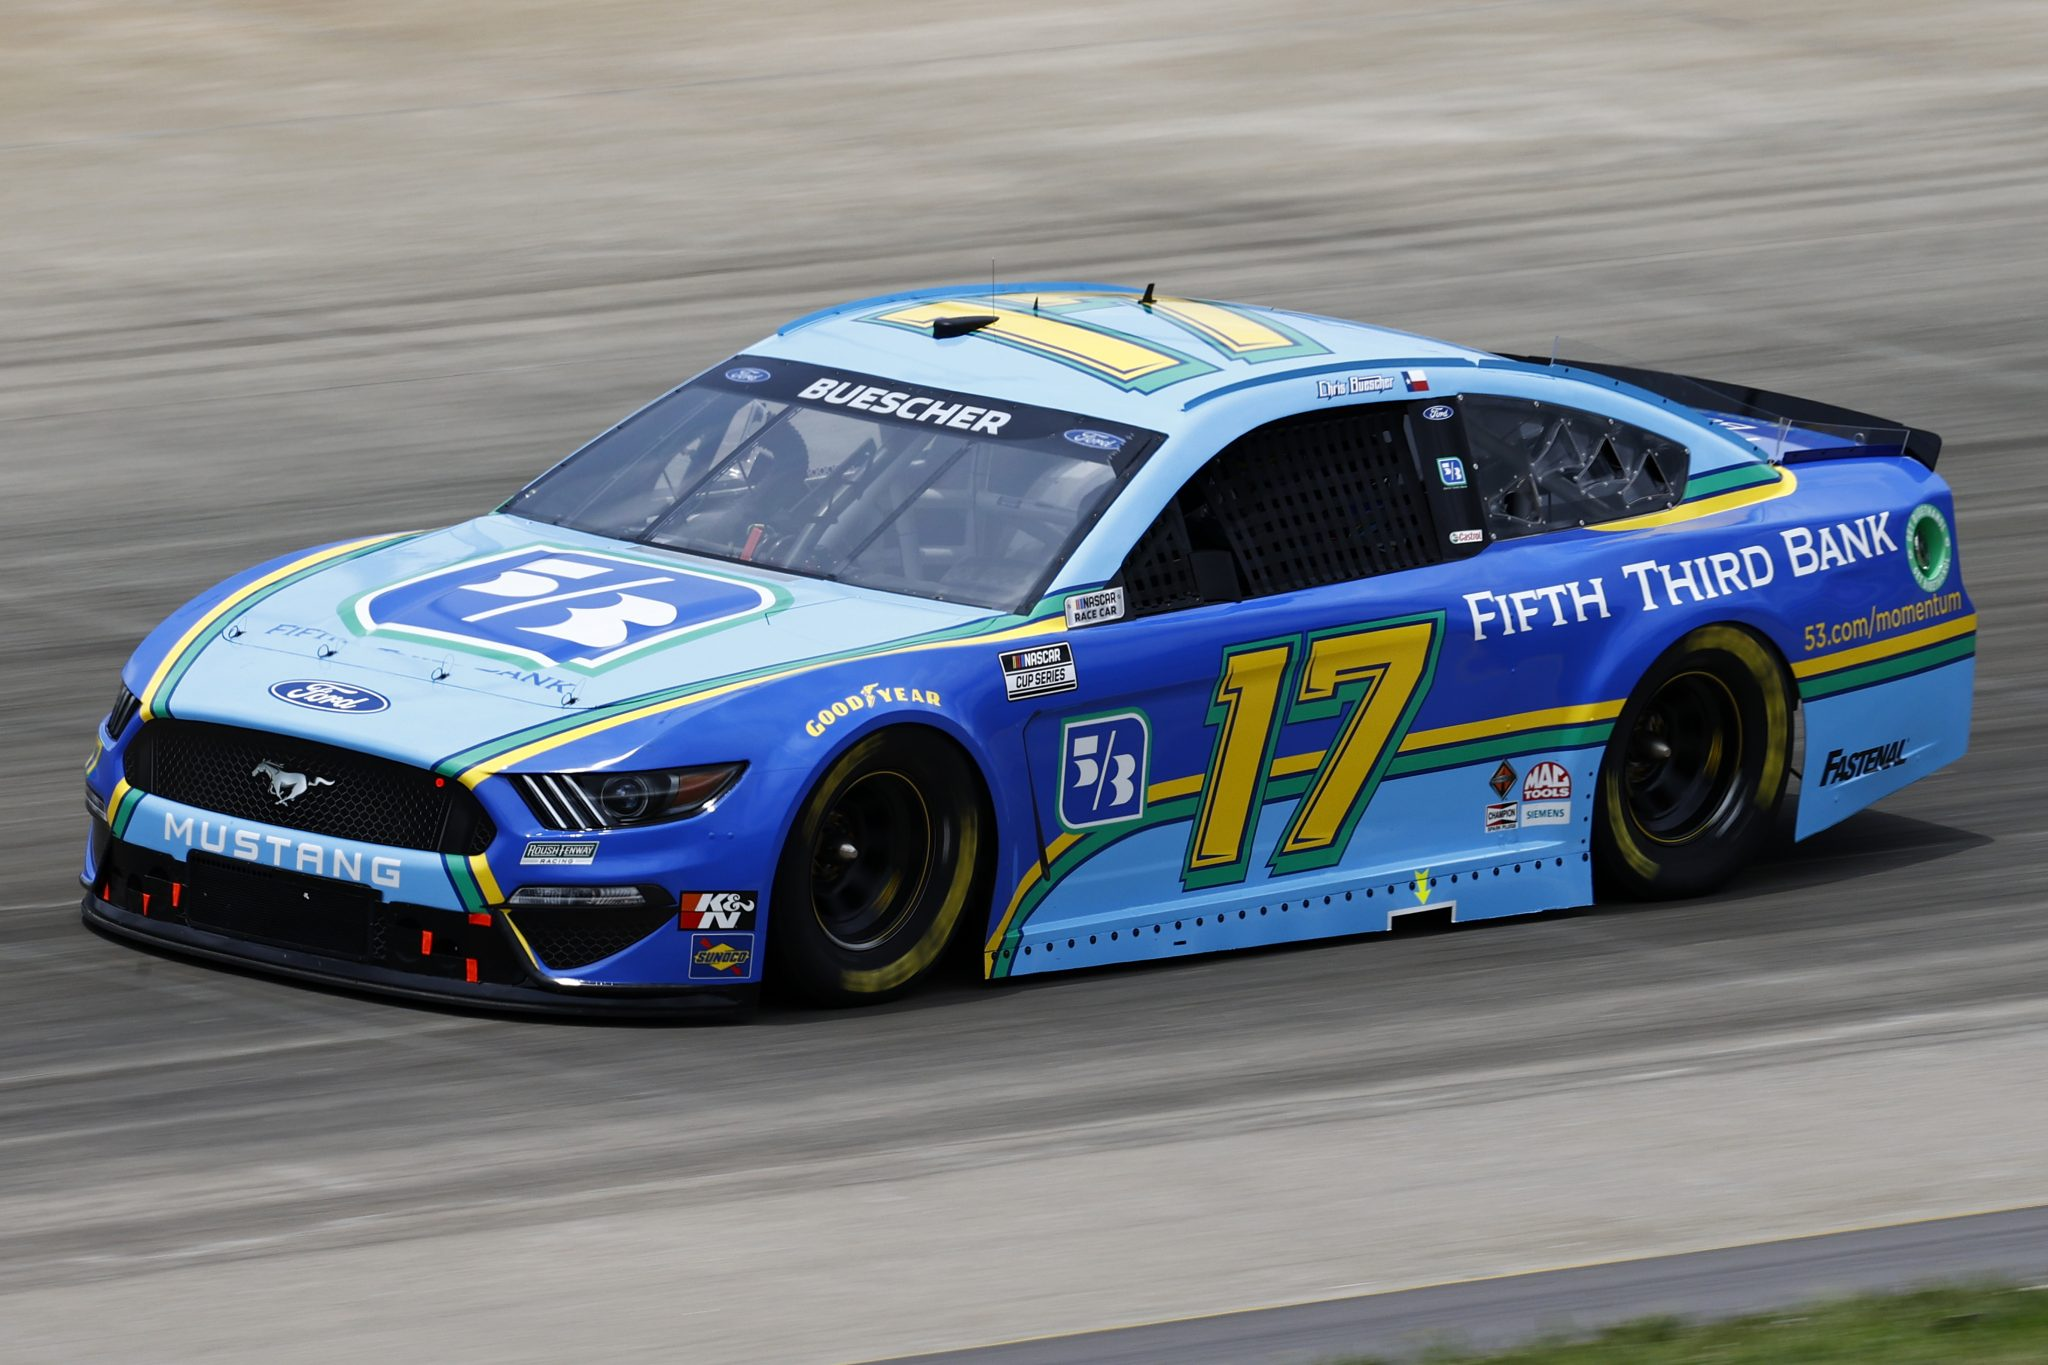 LEBANON, TENNESSEE - JUNE 19: Chris Buescher, driver of the #17 Fifth Third Bank Ford, drives during practice for the NASCAR Cup Series Ally 400 at Nashville Superspeedway on June 19, 2021 in Lebanon, Tennessee. (Photo by Jared C. Tilton/Getty Images) | Getty Images